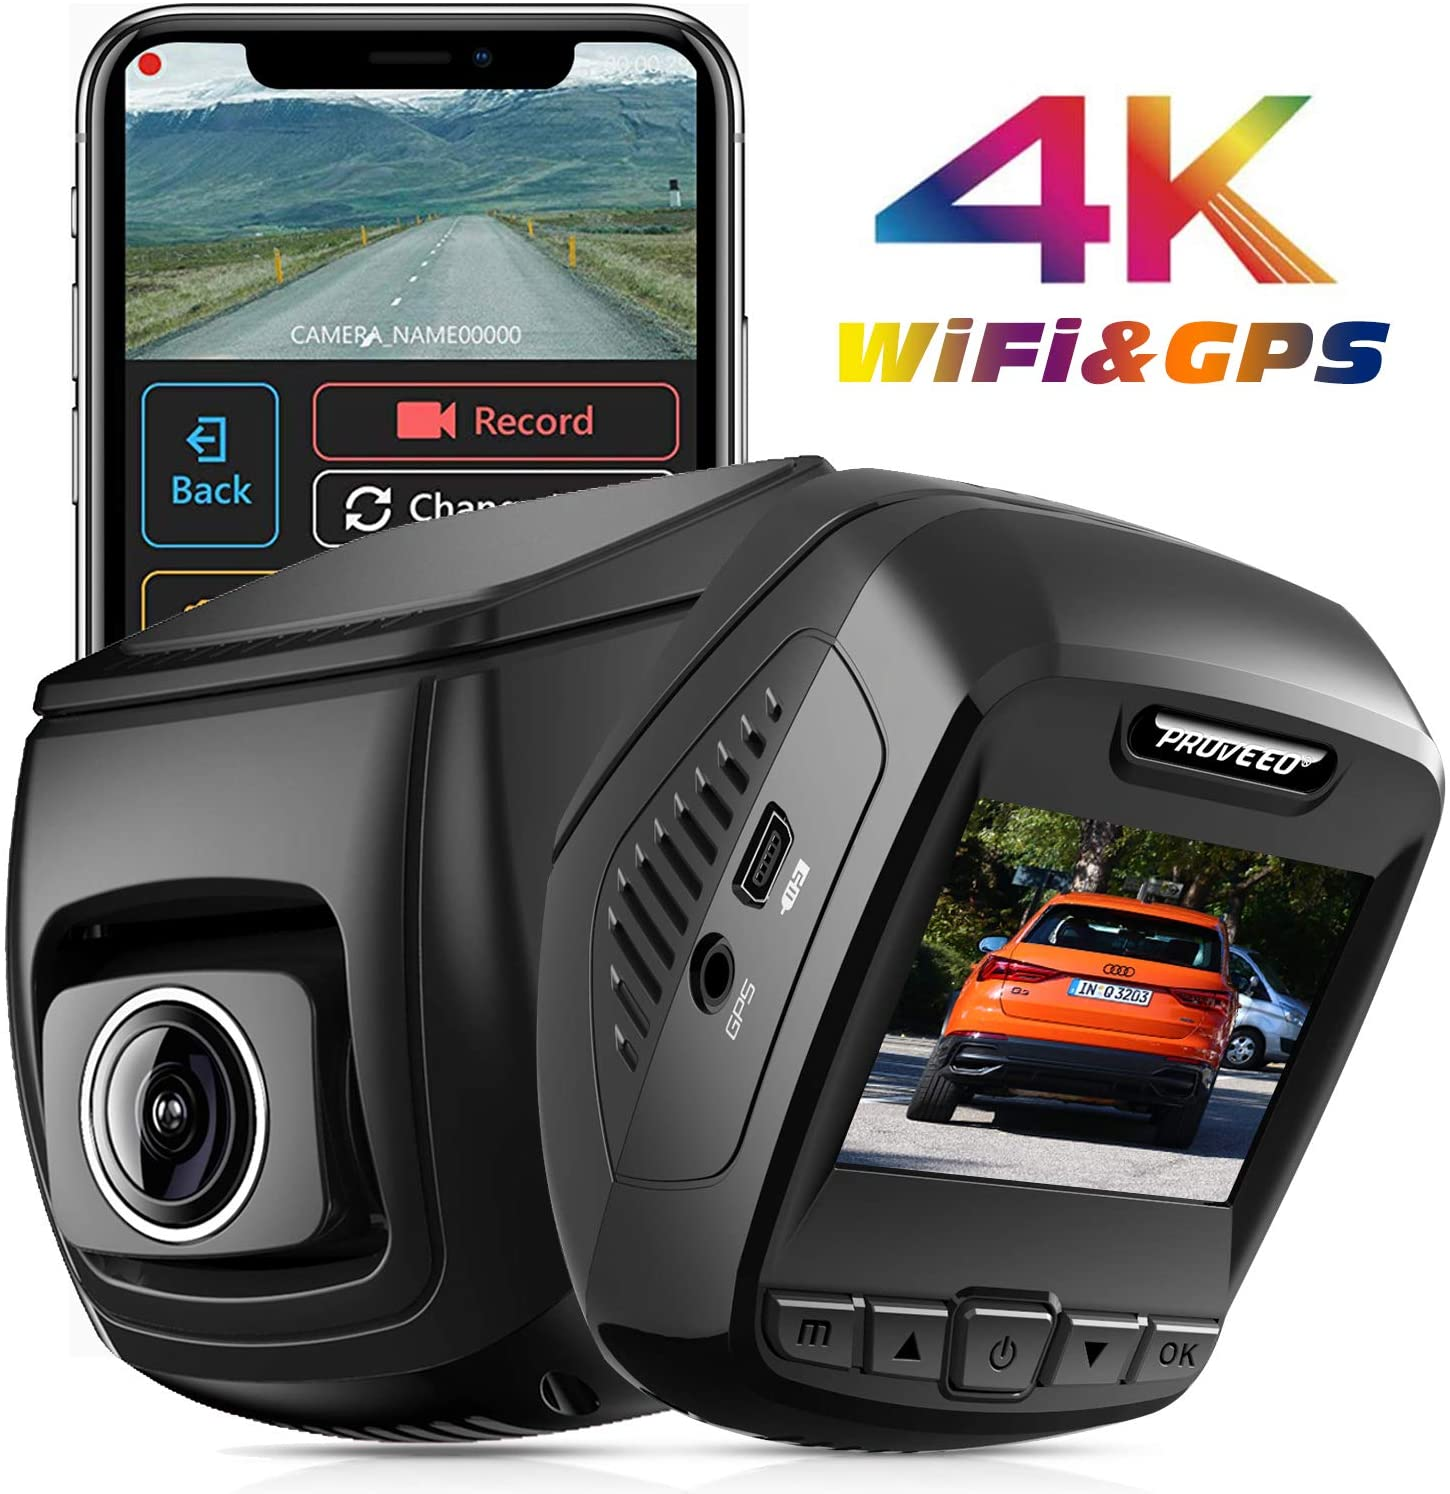 Pruveeo T7 <font><b>4K</b></font> Dash Cam Built in WiFi GPS, UHD 2160P Dash Camera for <font><b>Cars</b></font>, 2.4 inch LCD, 170 Degree, Wide Angle, Supercapacitor, image